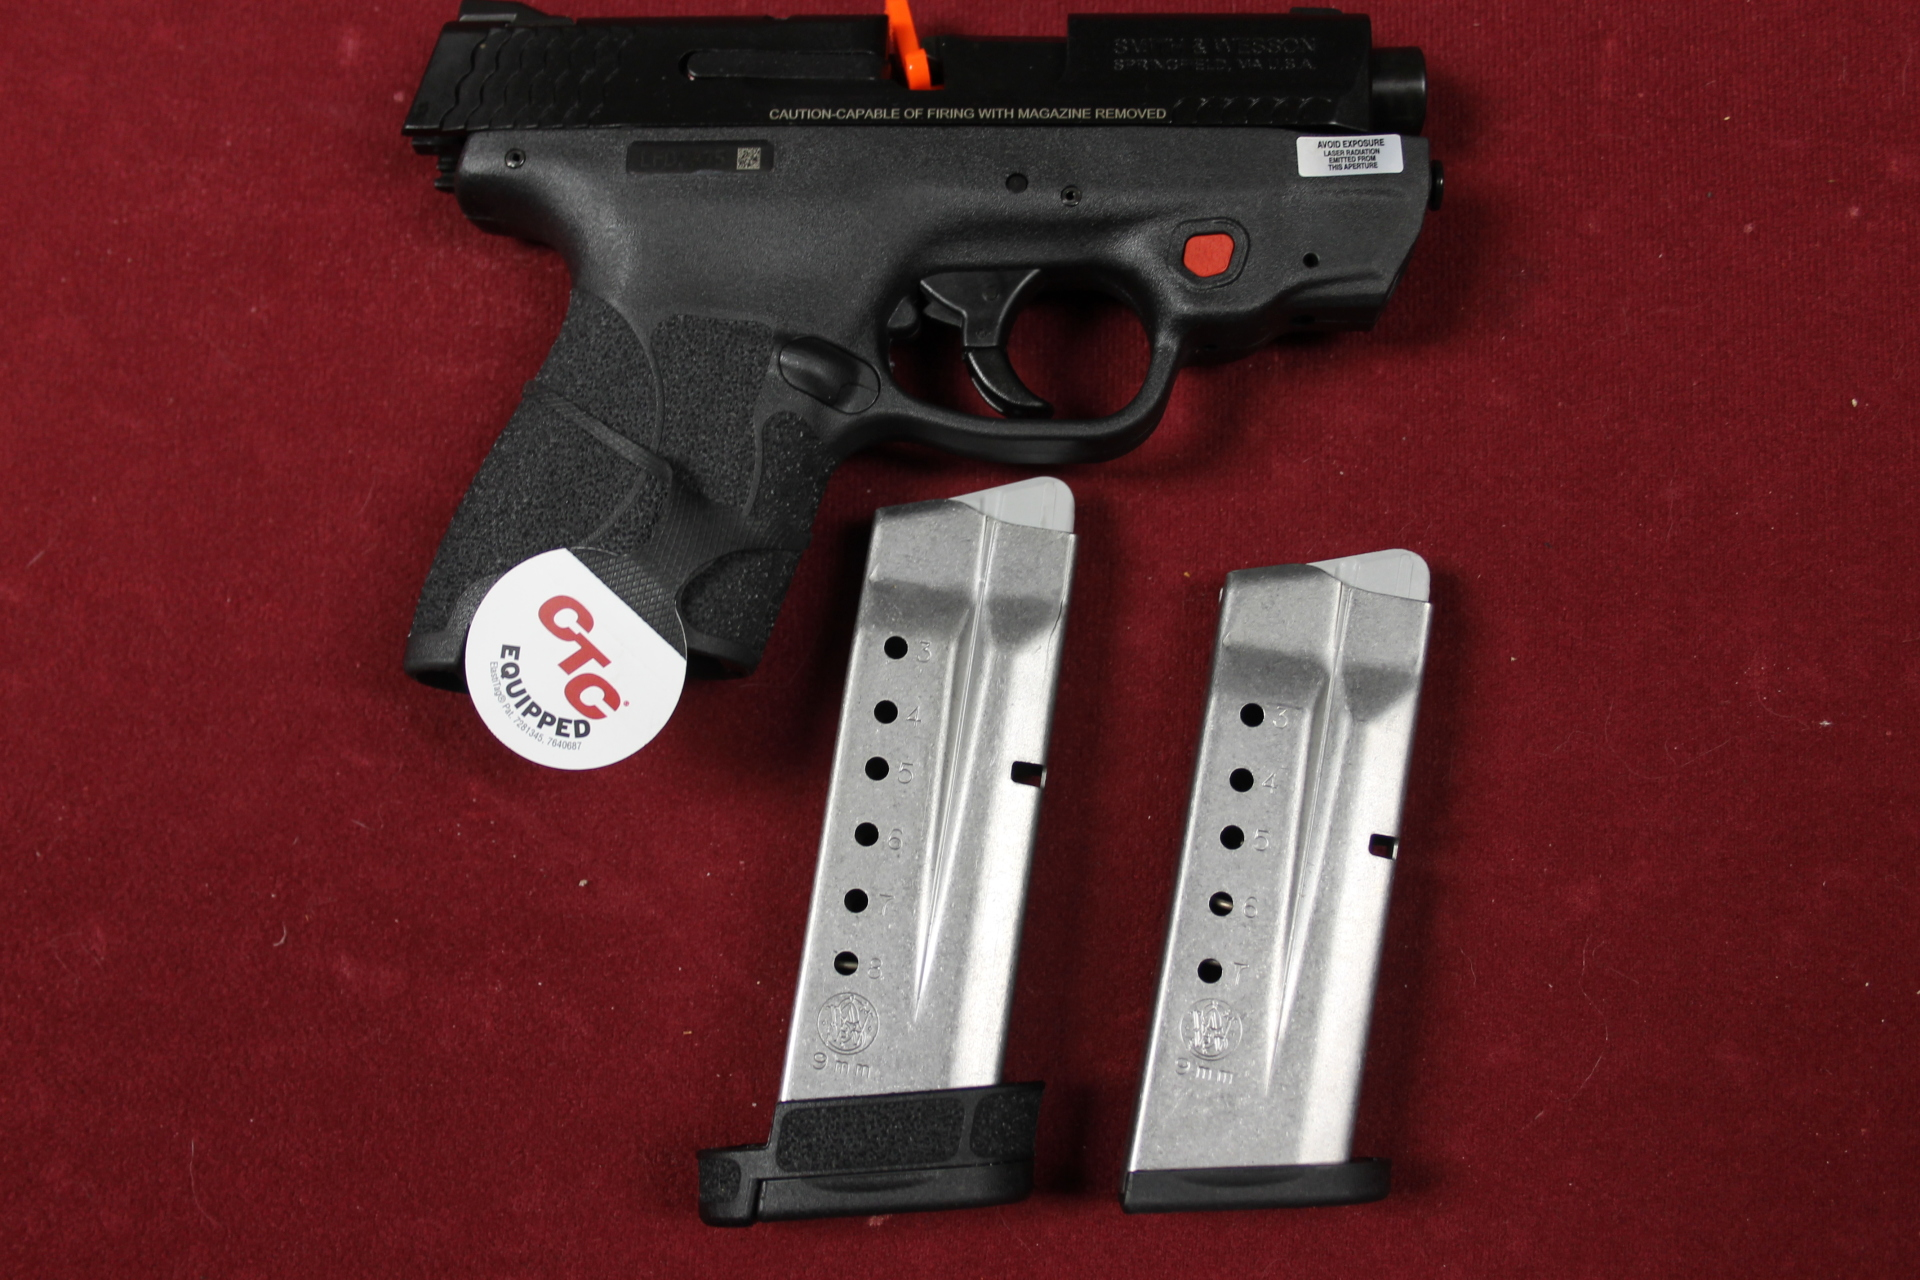 S&W SHIELD M&P9 9MM W/CTC INTEGRATED RED LASER  $439